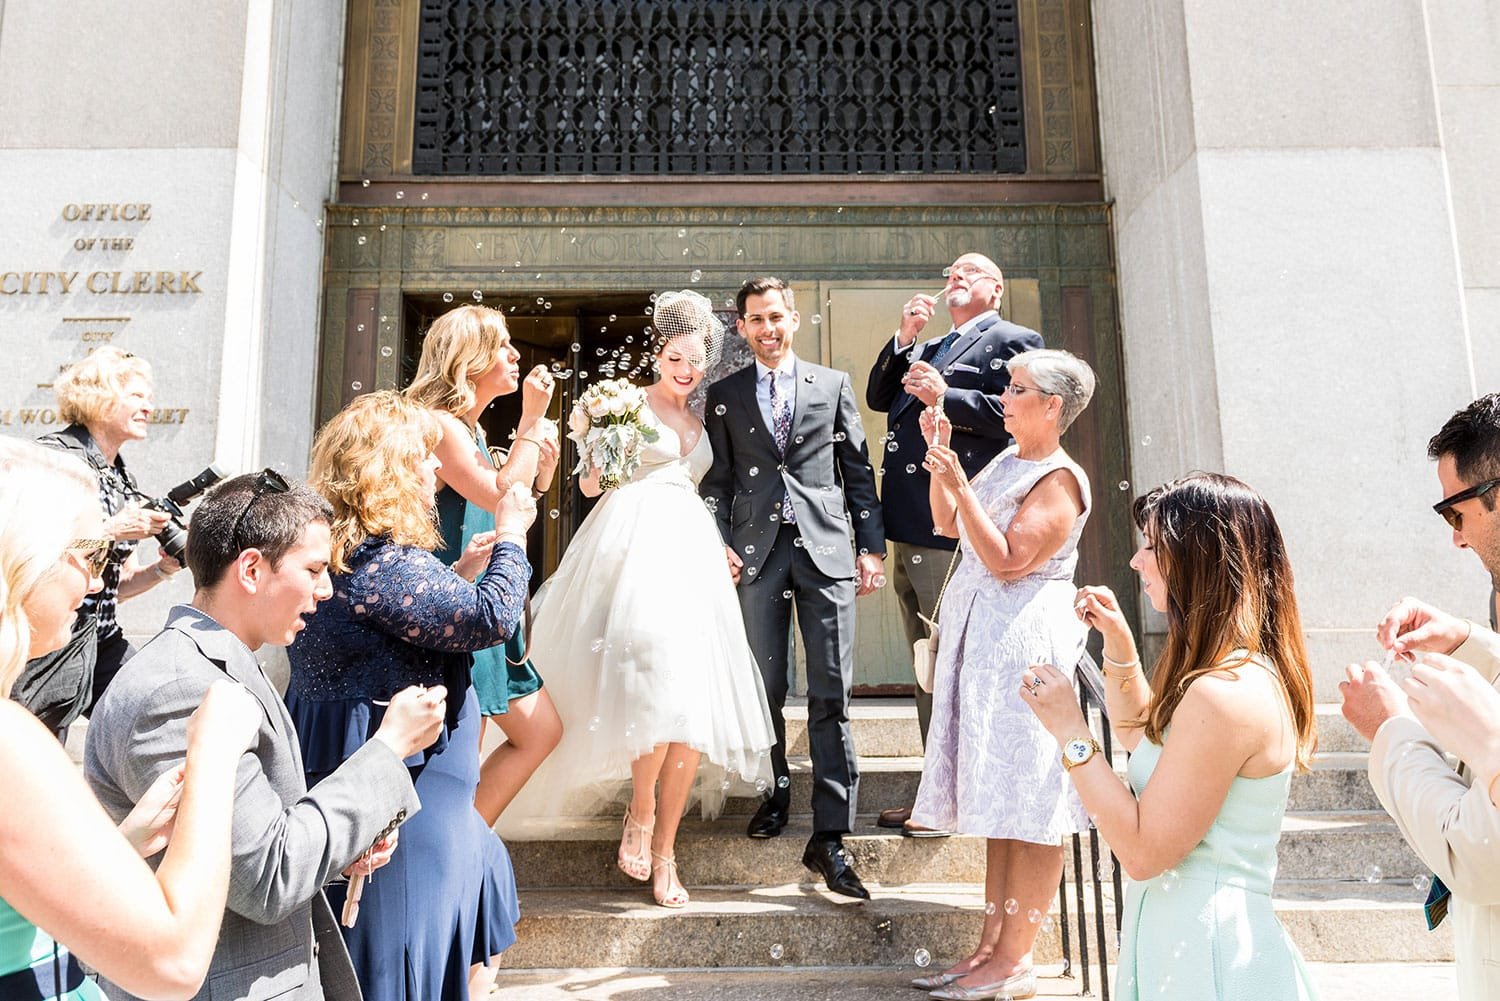 new-york-city-hall-wedding